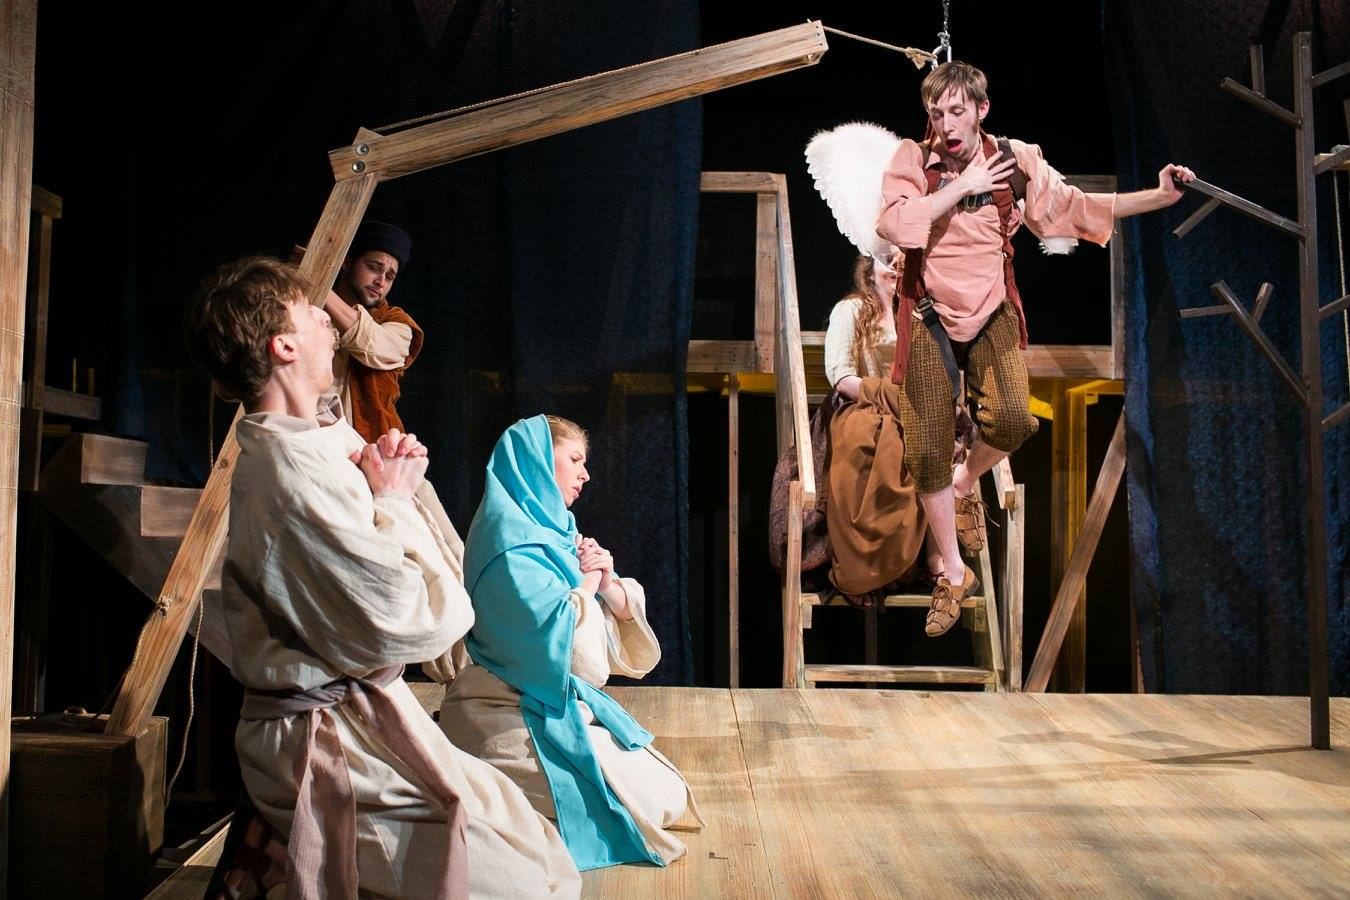 Sam, Machinist, Mary 1, Mary 2, and Simon in Act 1 of Sarah Ruhl's Passion Play costume design by Katharine Tarkulich